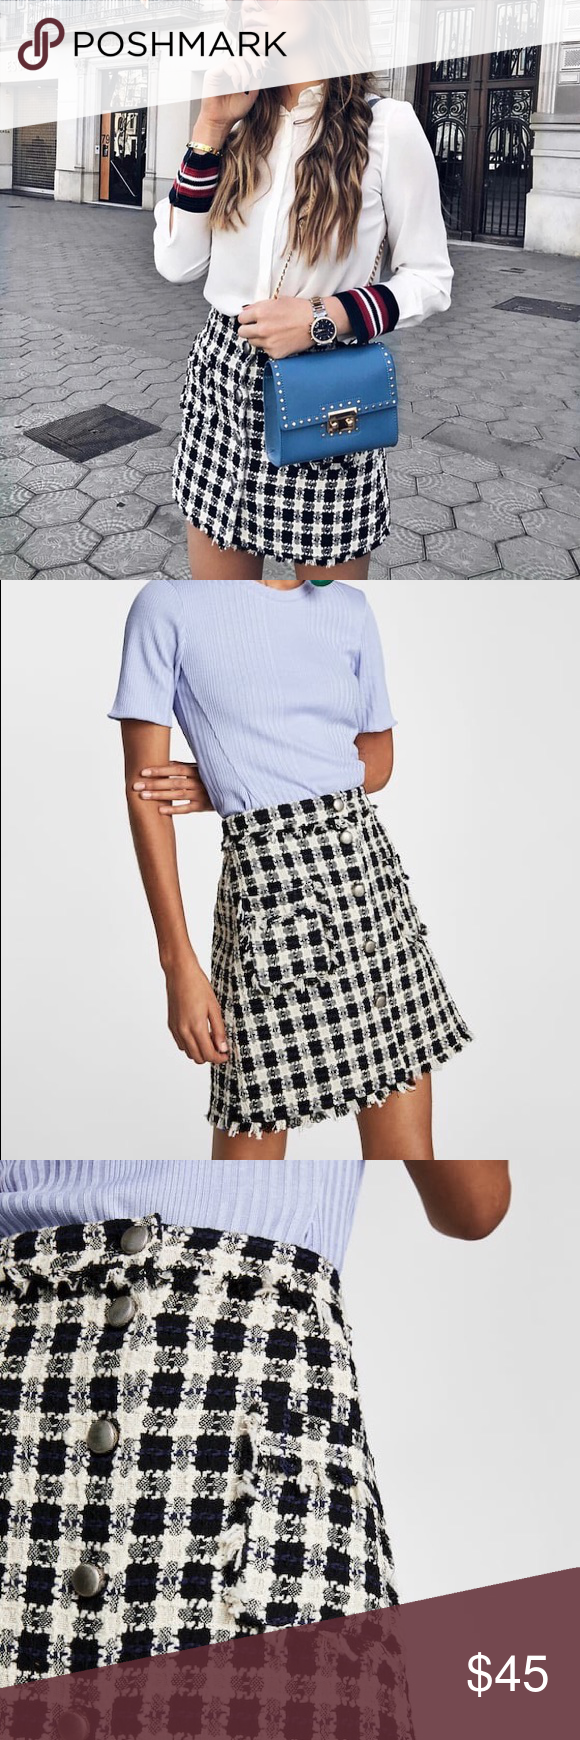 Nwt Zara Checkered Tweed Textured Weave Mini Skirt Nwt Mini